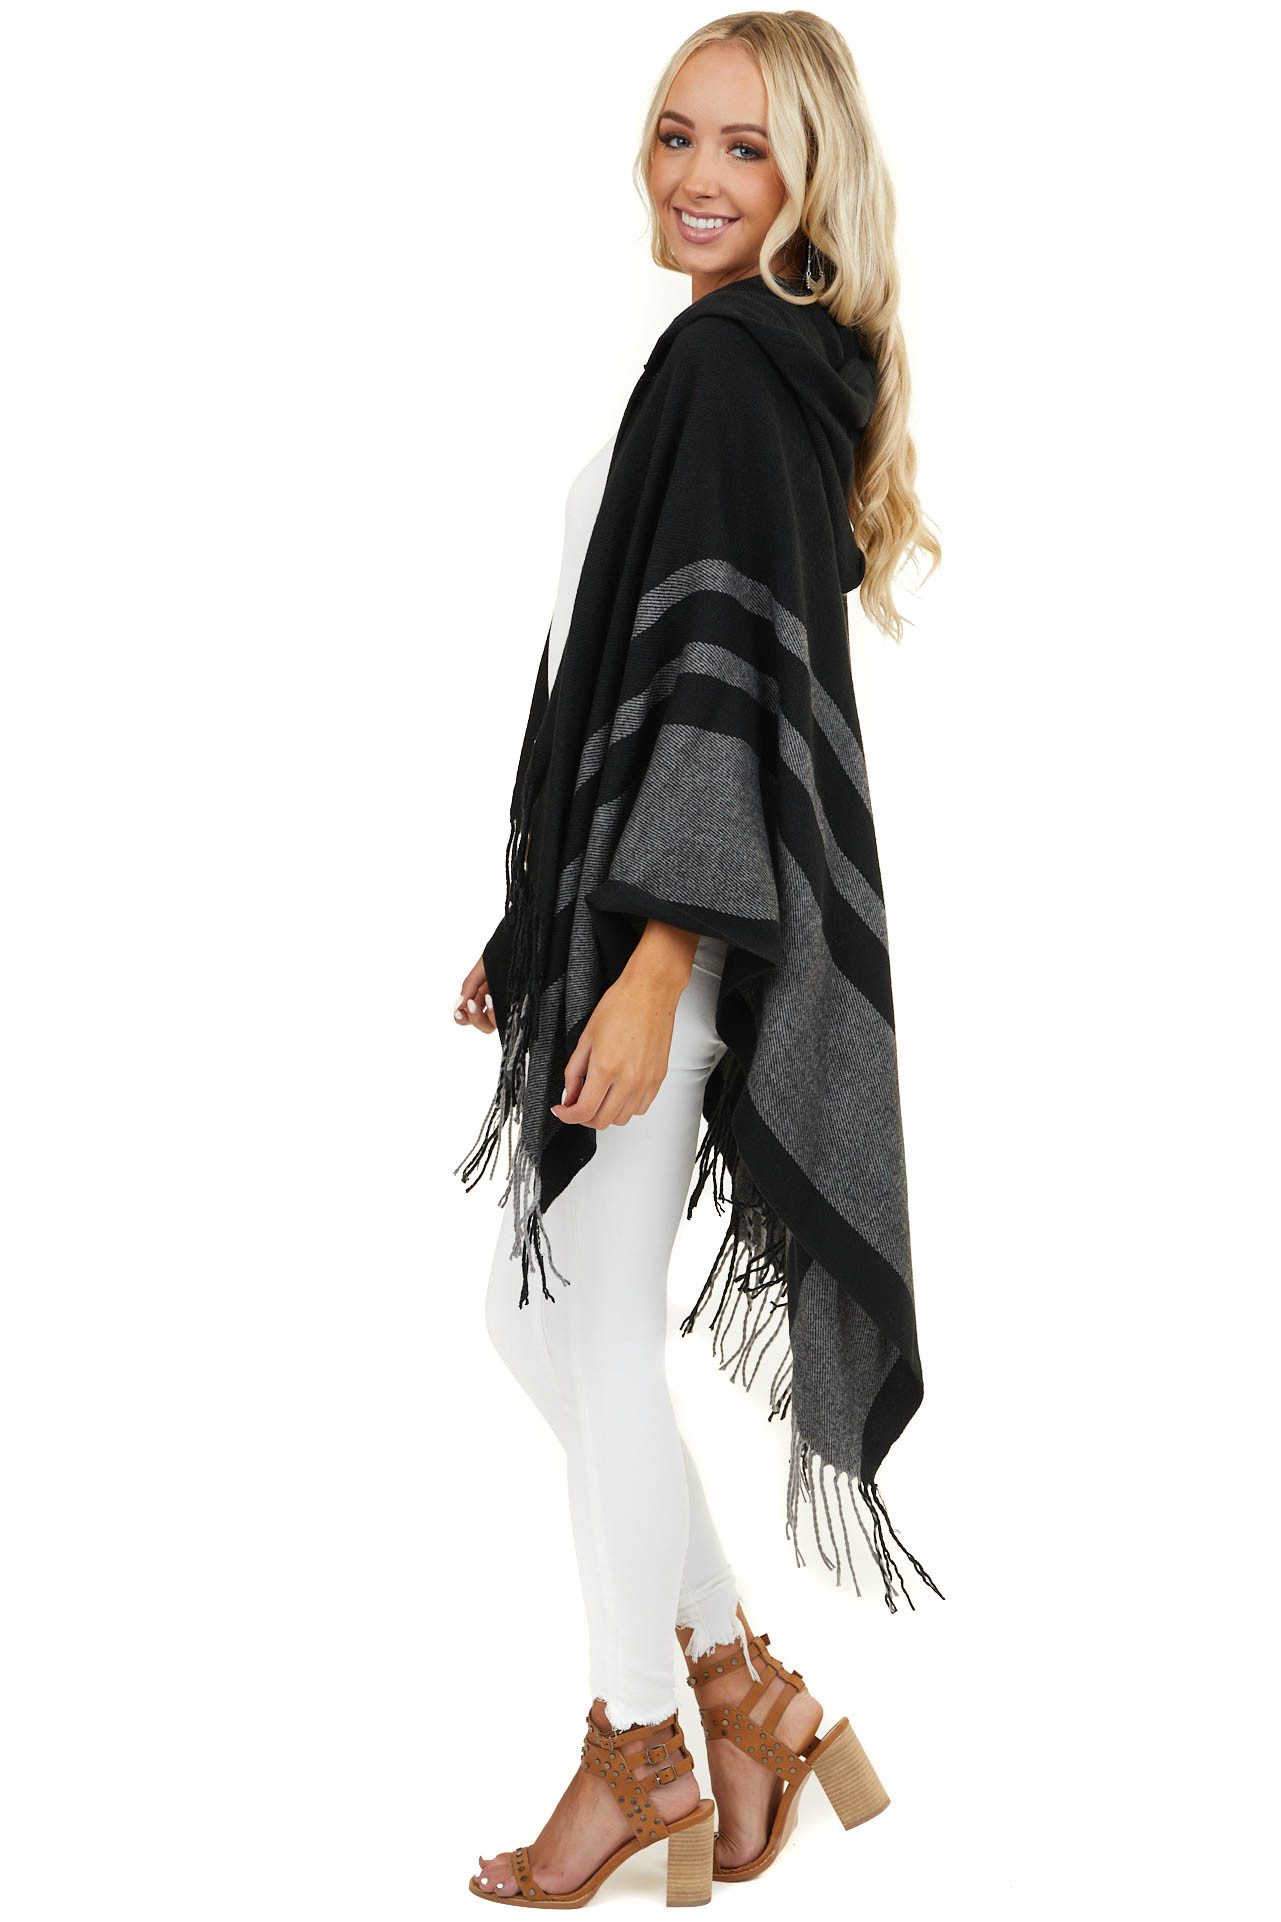 Black and Charcoal Woven Hooded Poncho with Fringe